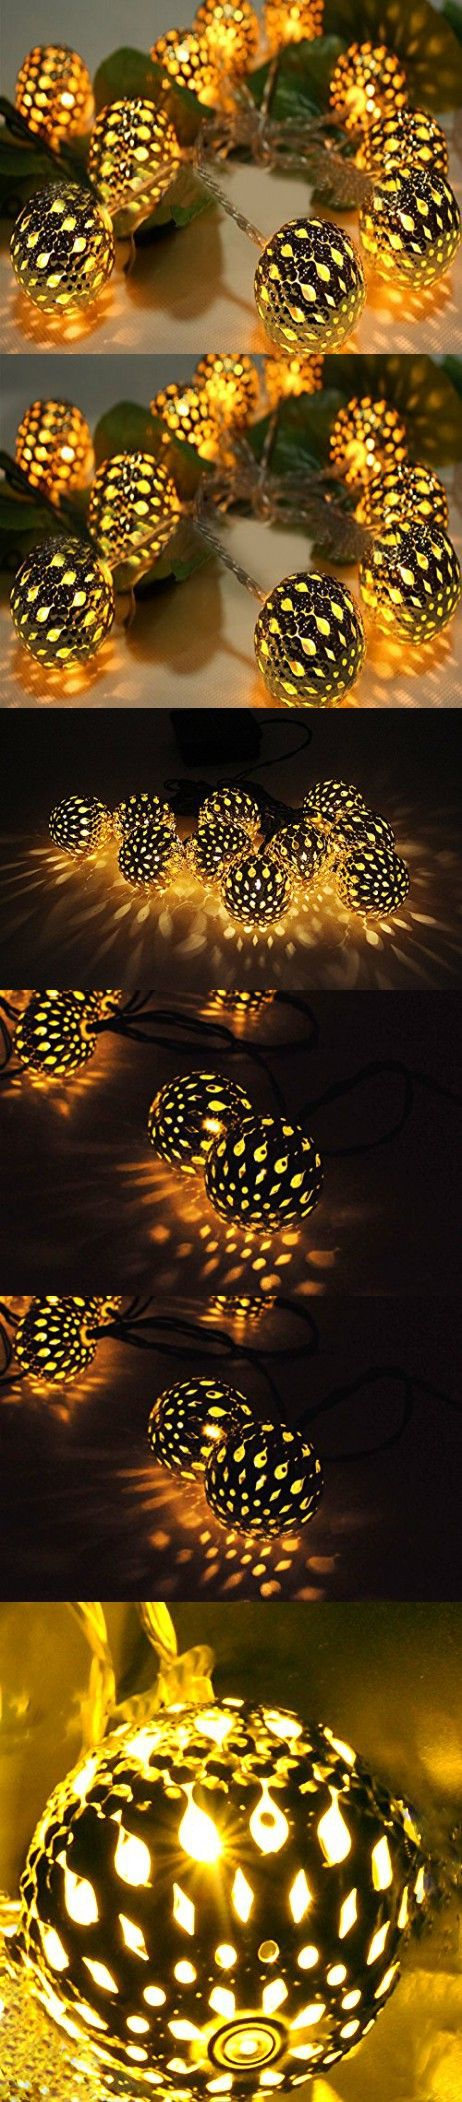 Best String Lights Outdoor : 25+ best ideas about Solar string lights on Pinterest Solar fairy lights, Solar garden lights ...